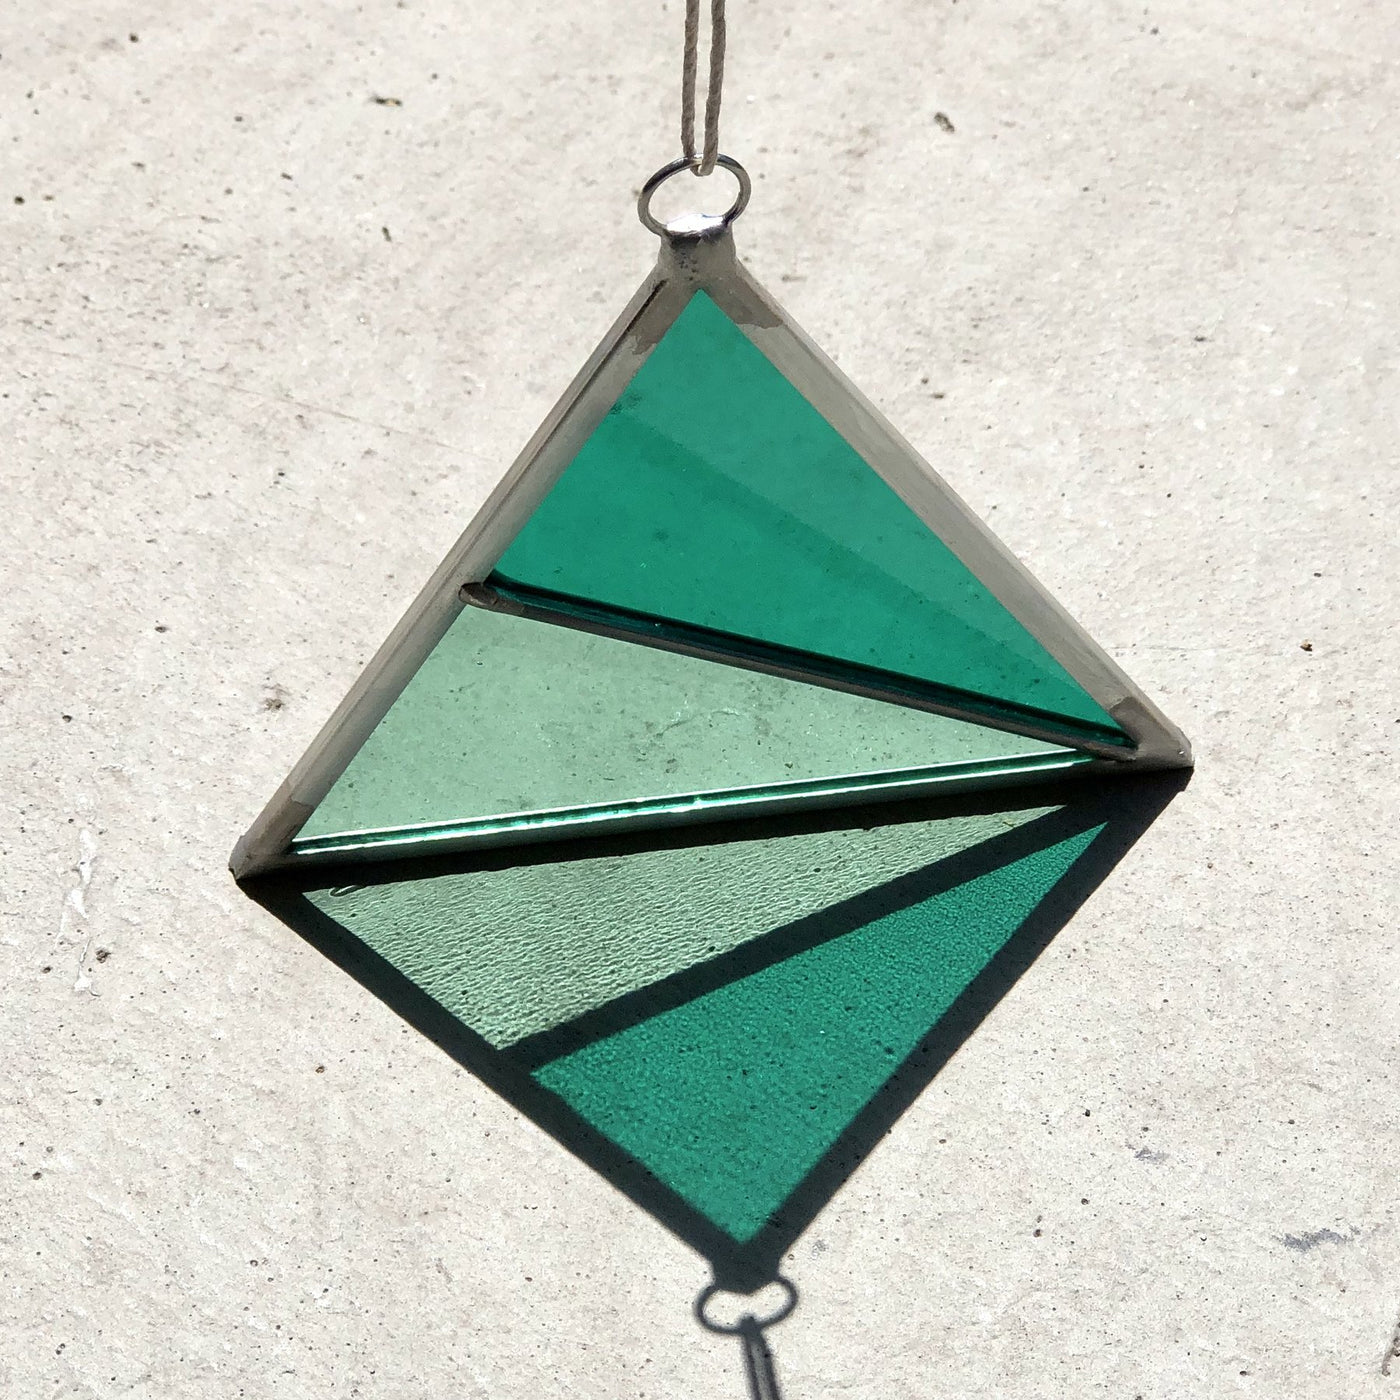 Debbie Bean: Stained Glass Triangle Ornament in Green / Green